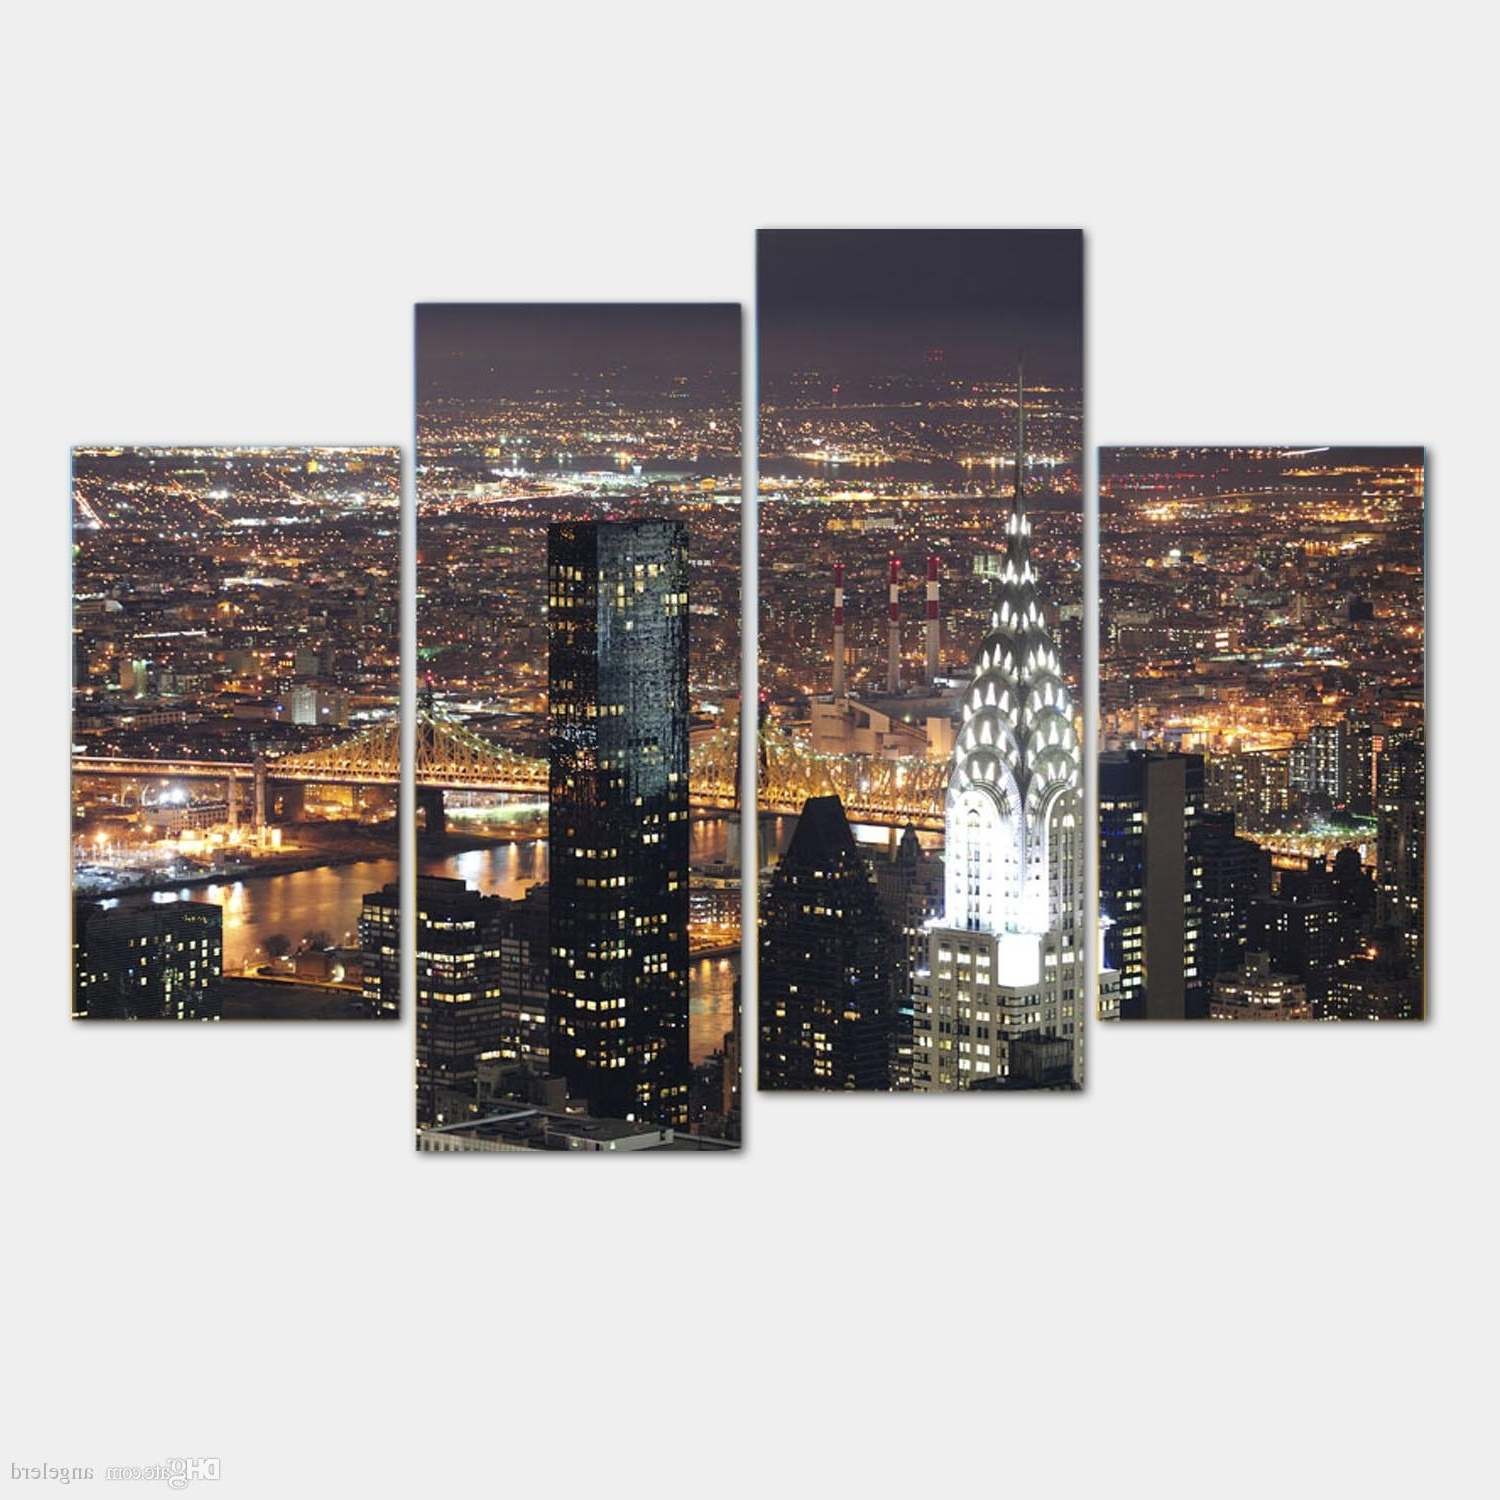 2018 New York City Wall Art Throughout Discount Wall Art New York City Manhattan Usa With Lights In Nice (View 8 of 15)